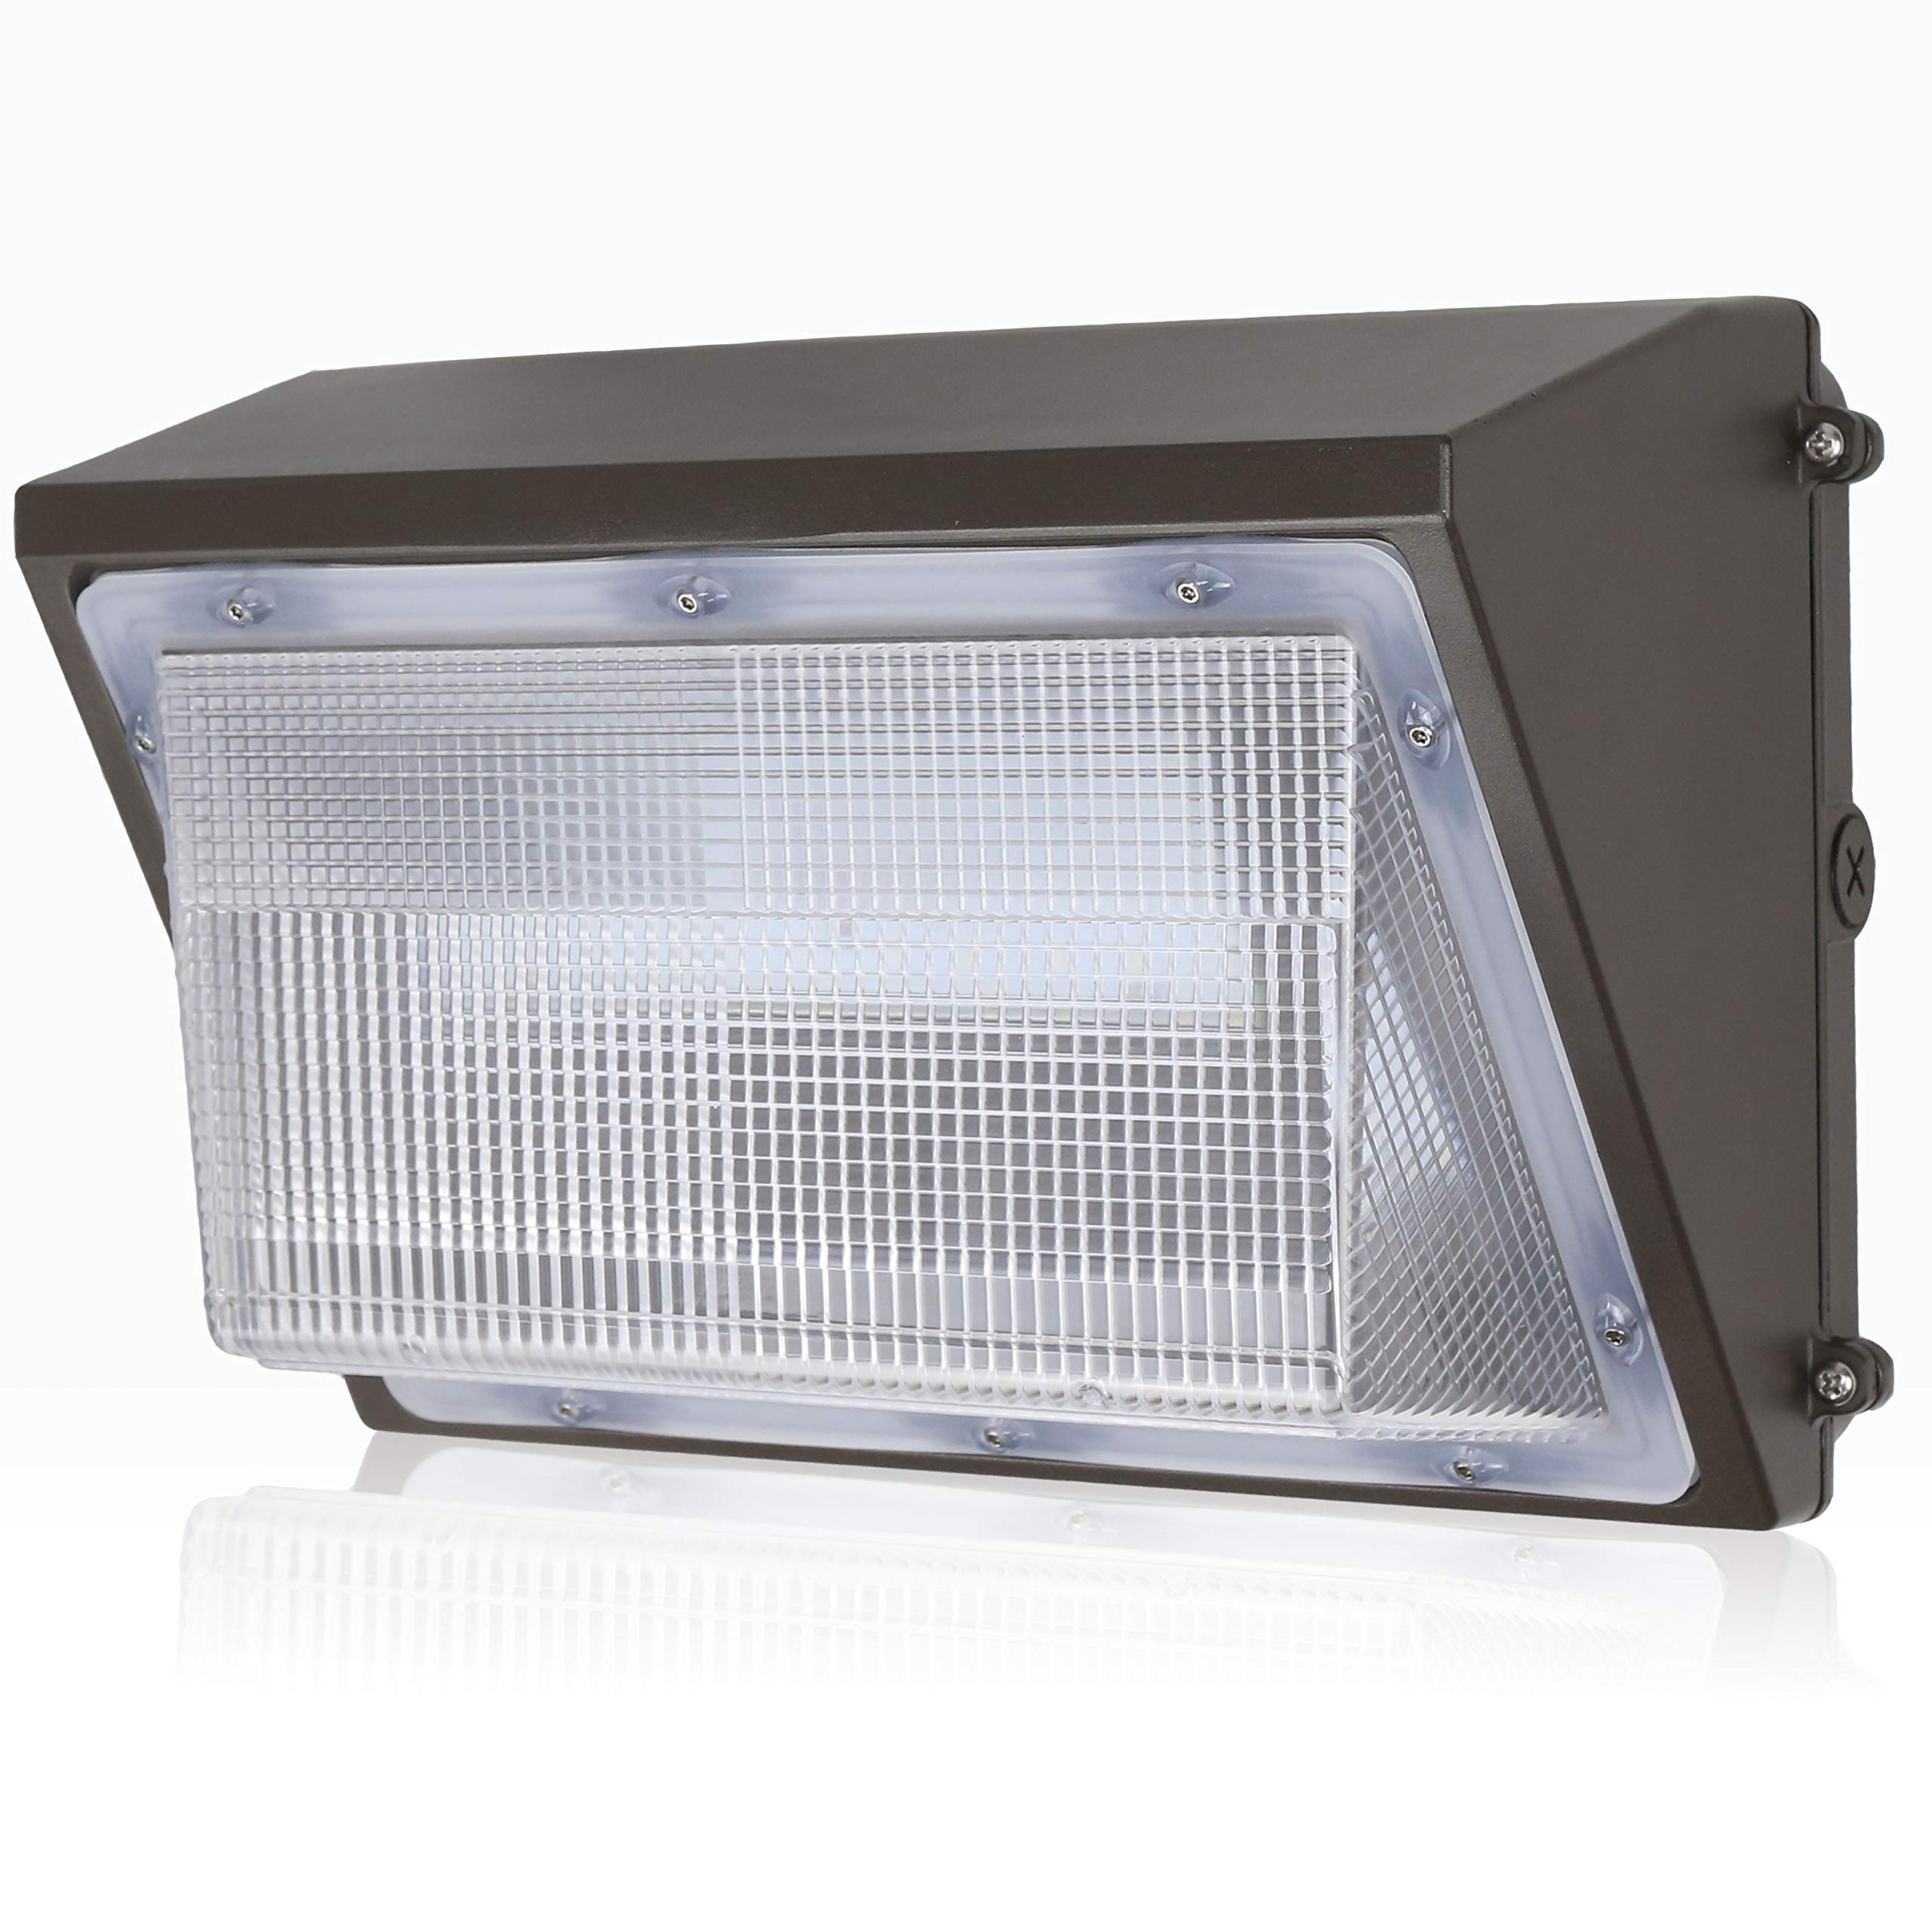 GKOLED 45W LED Wall Pack Light Fixture, 5300 Lumens, 5000K Daylight, 300W HPS/HID Replacement, Waterproof Commercial Grade Wall Pack, UL listed DLC 4.2 qualified, over 50,000 hours Lifespan